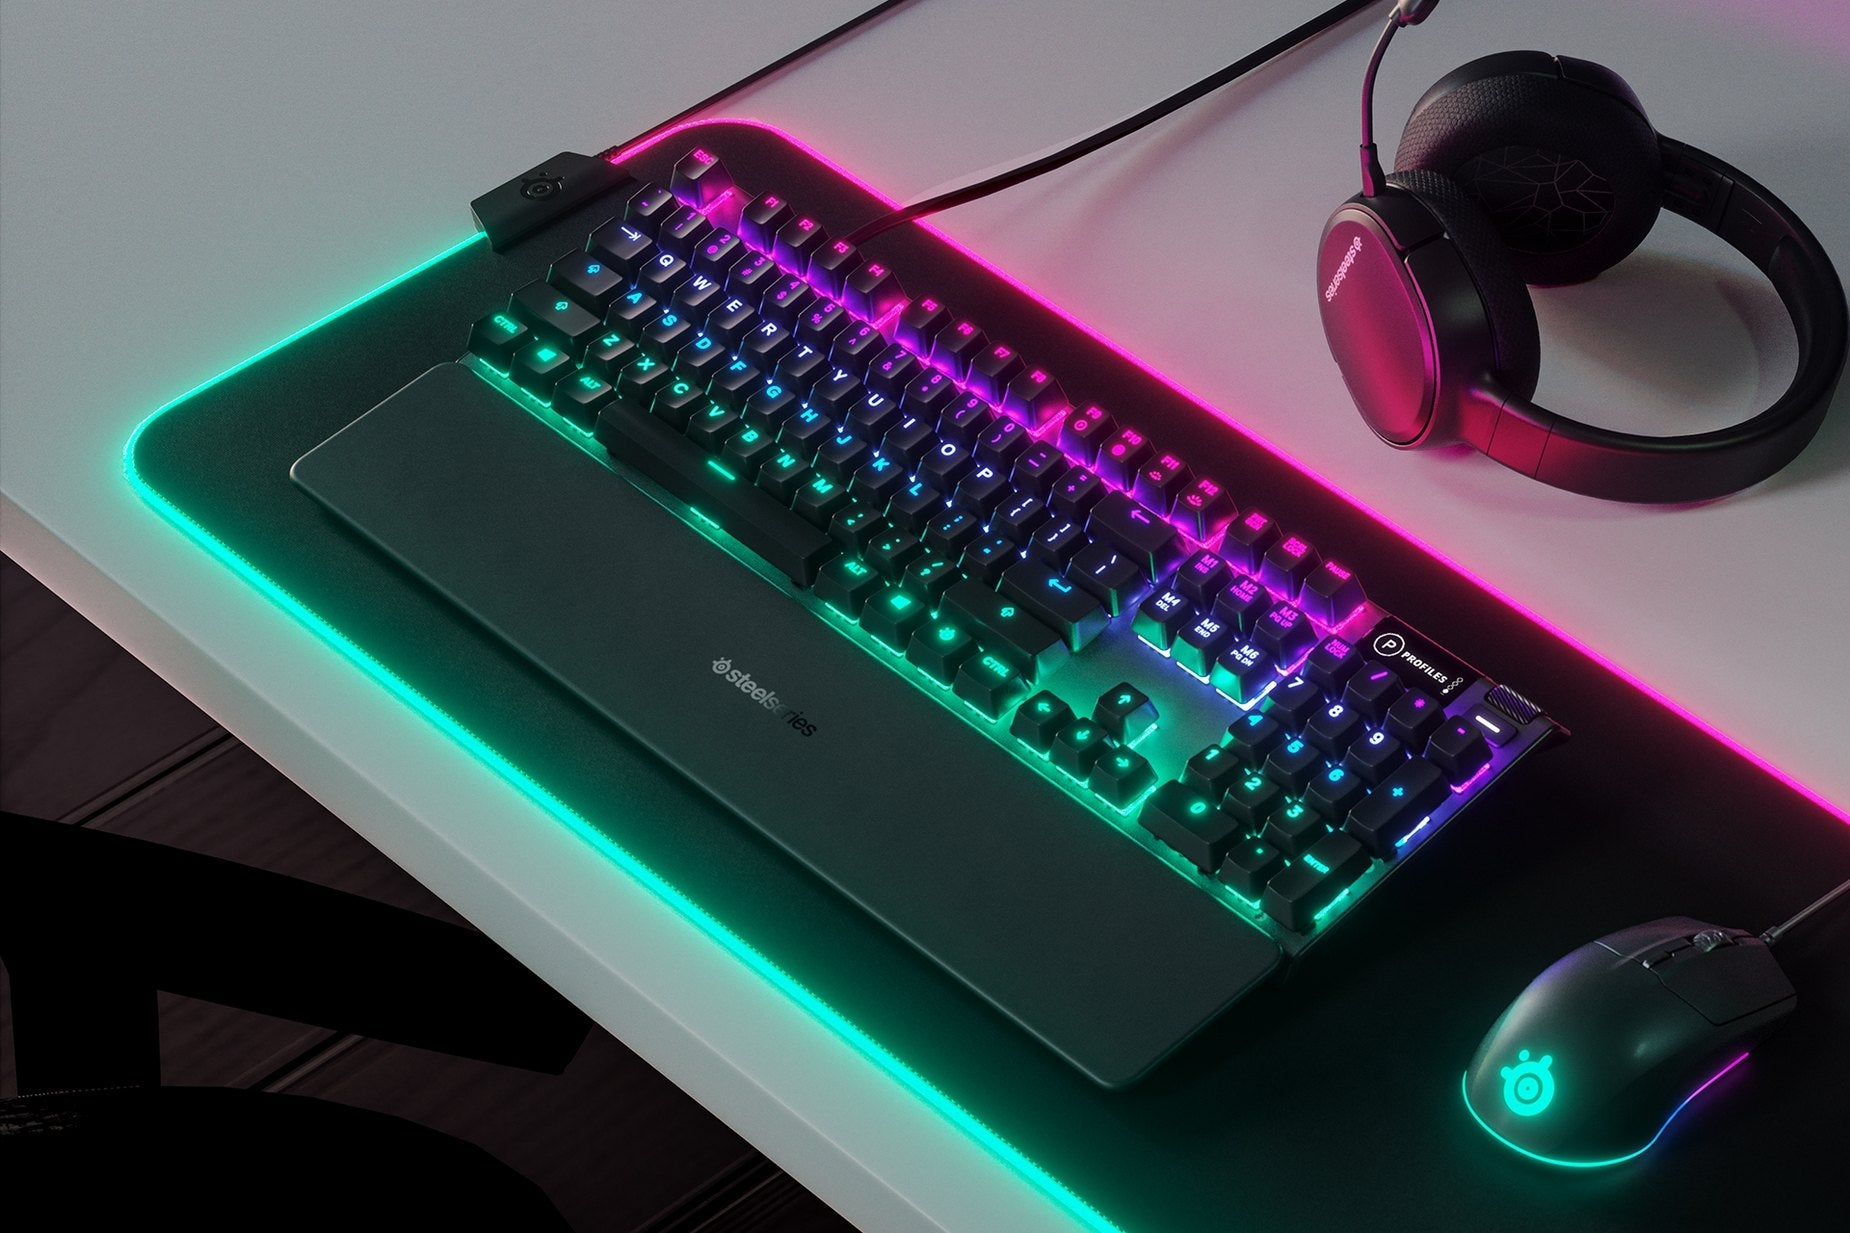 Dynamic Per-Key RGB Illumination - Millions of color options and reactive typing effects make you the designer of your ultimate setup. Sync up with your other SteelSeries gear for the most gorgeous setup ever.